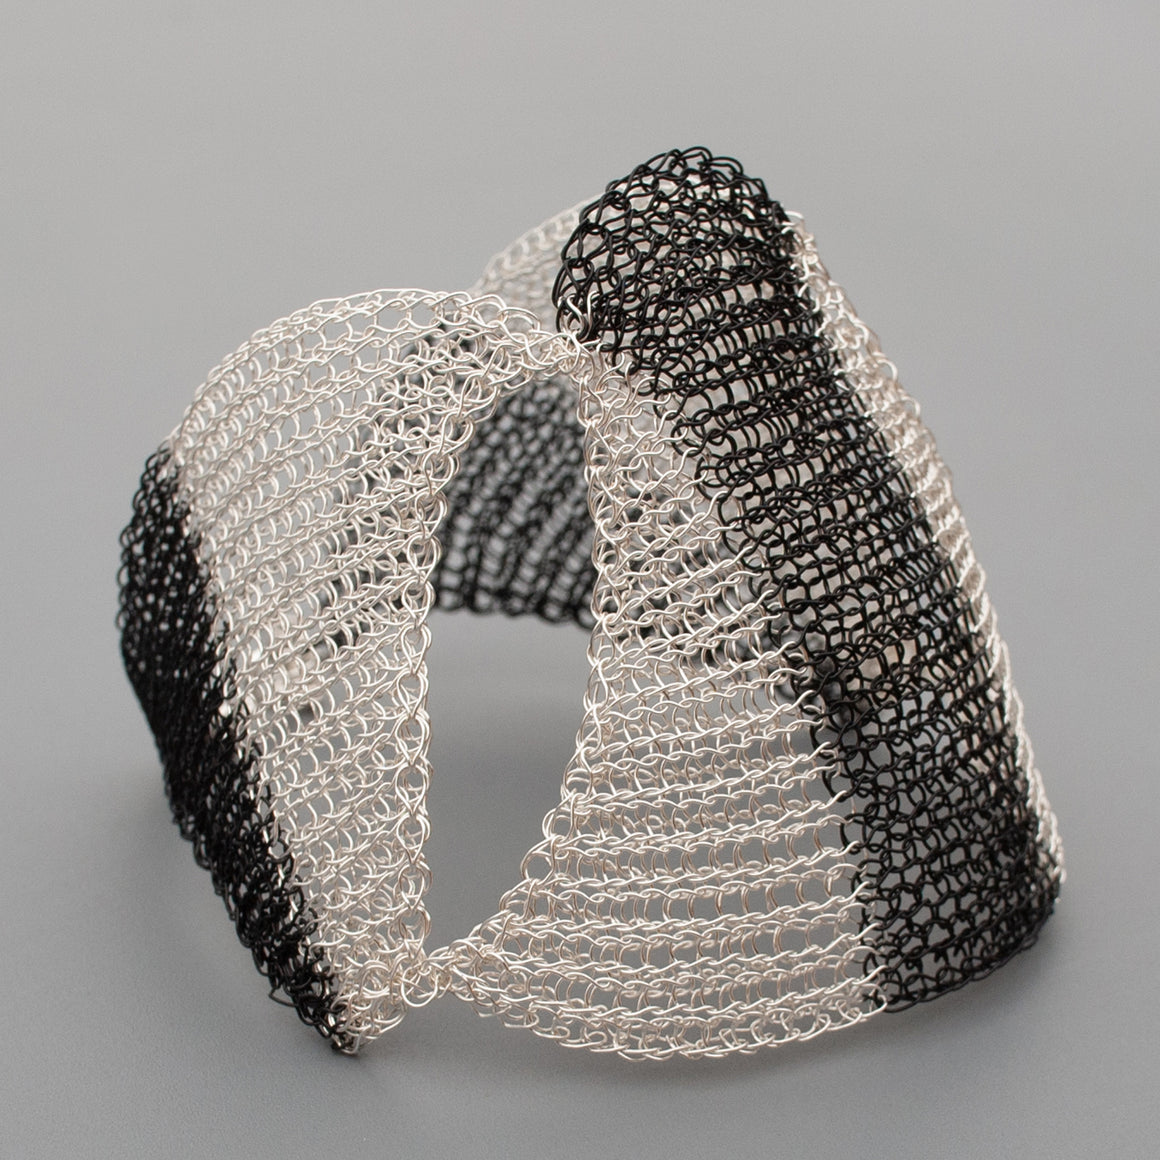 SHOGUN Bracelet, Contemporary wire crochet cuff, Black and White - Yooladesign